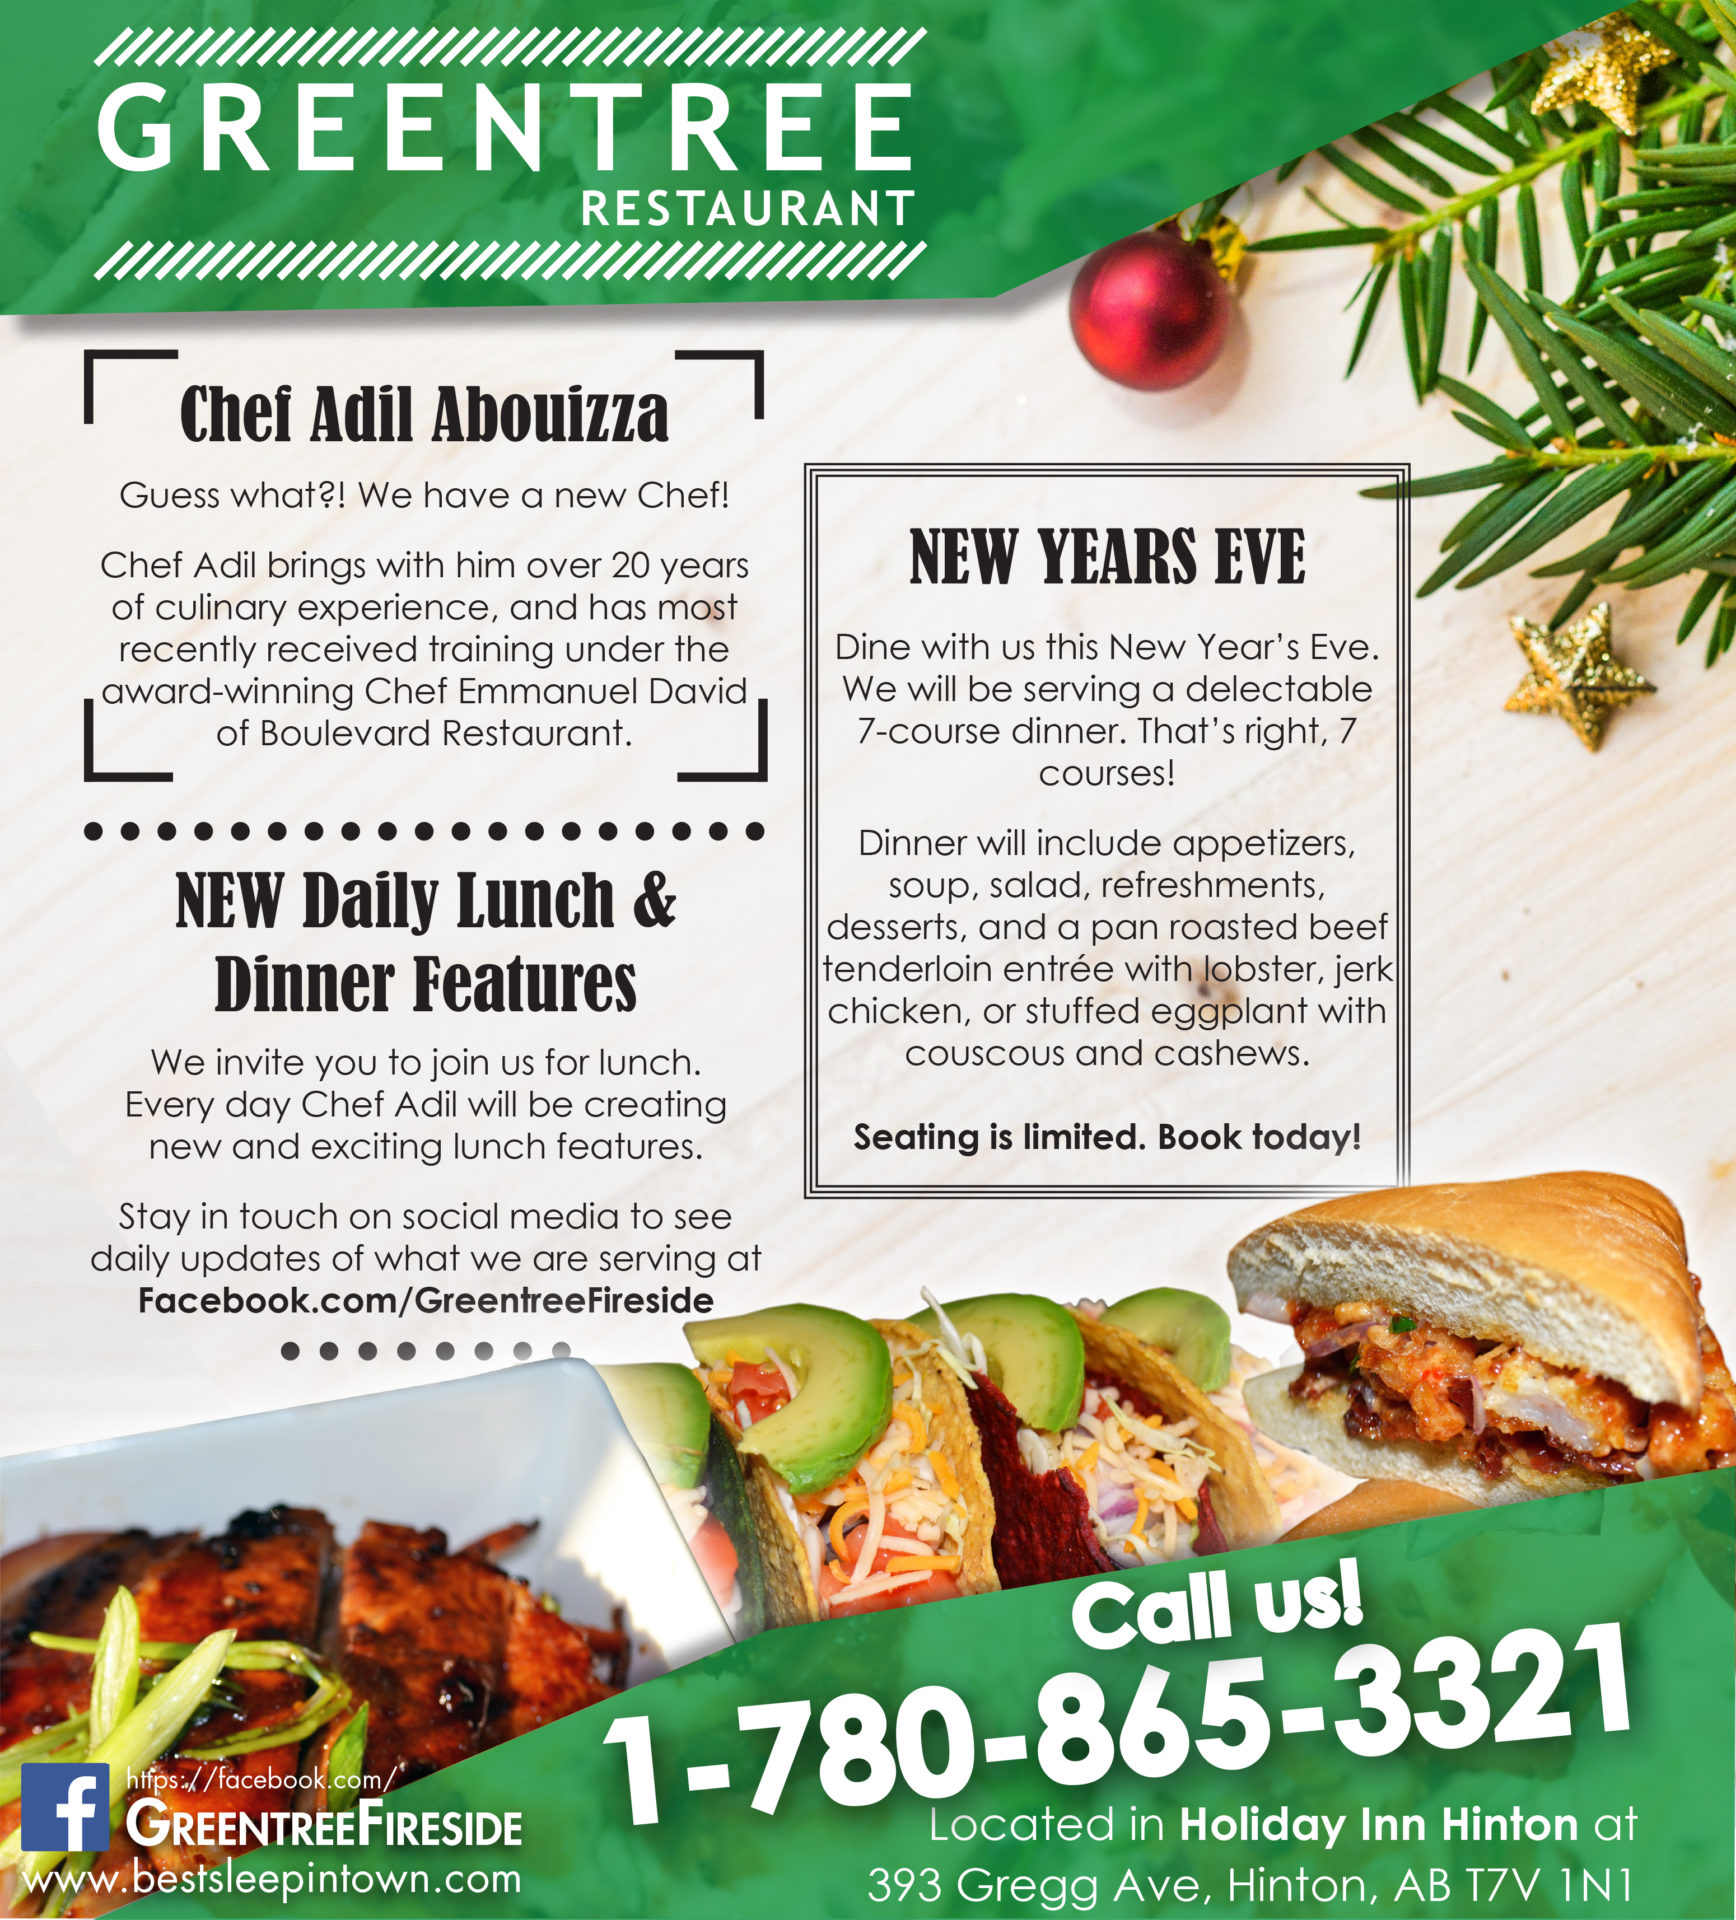 Greentree Restaurant newspaper ad made by Jay Gervais